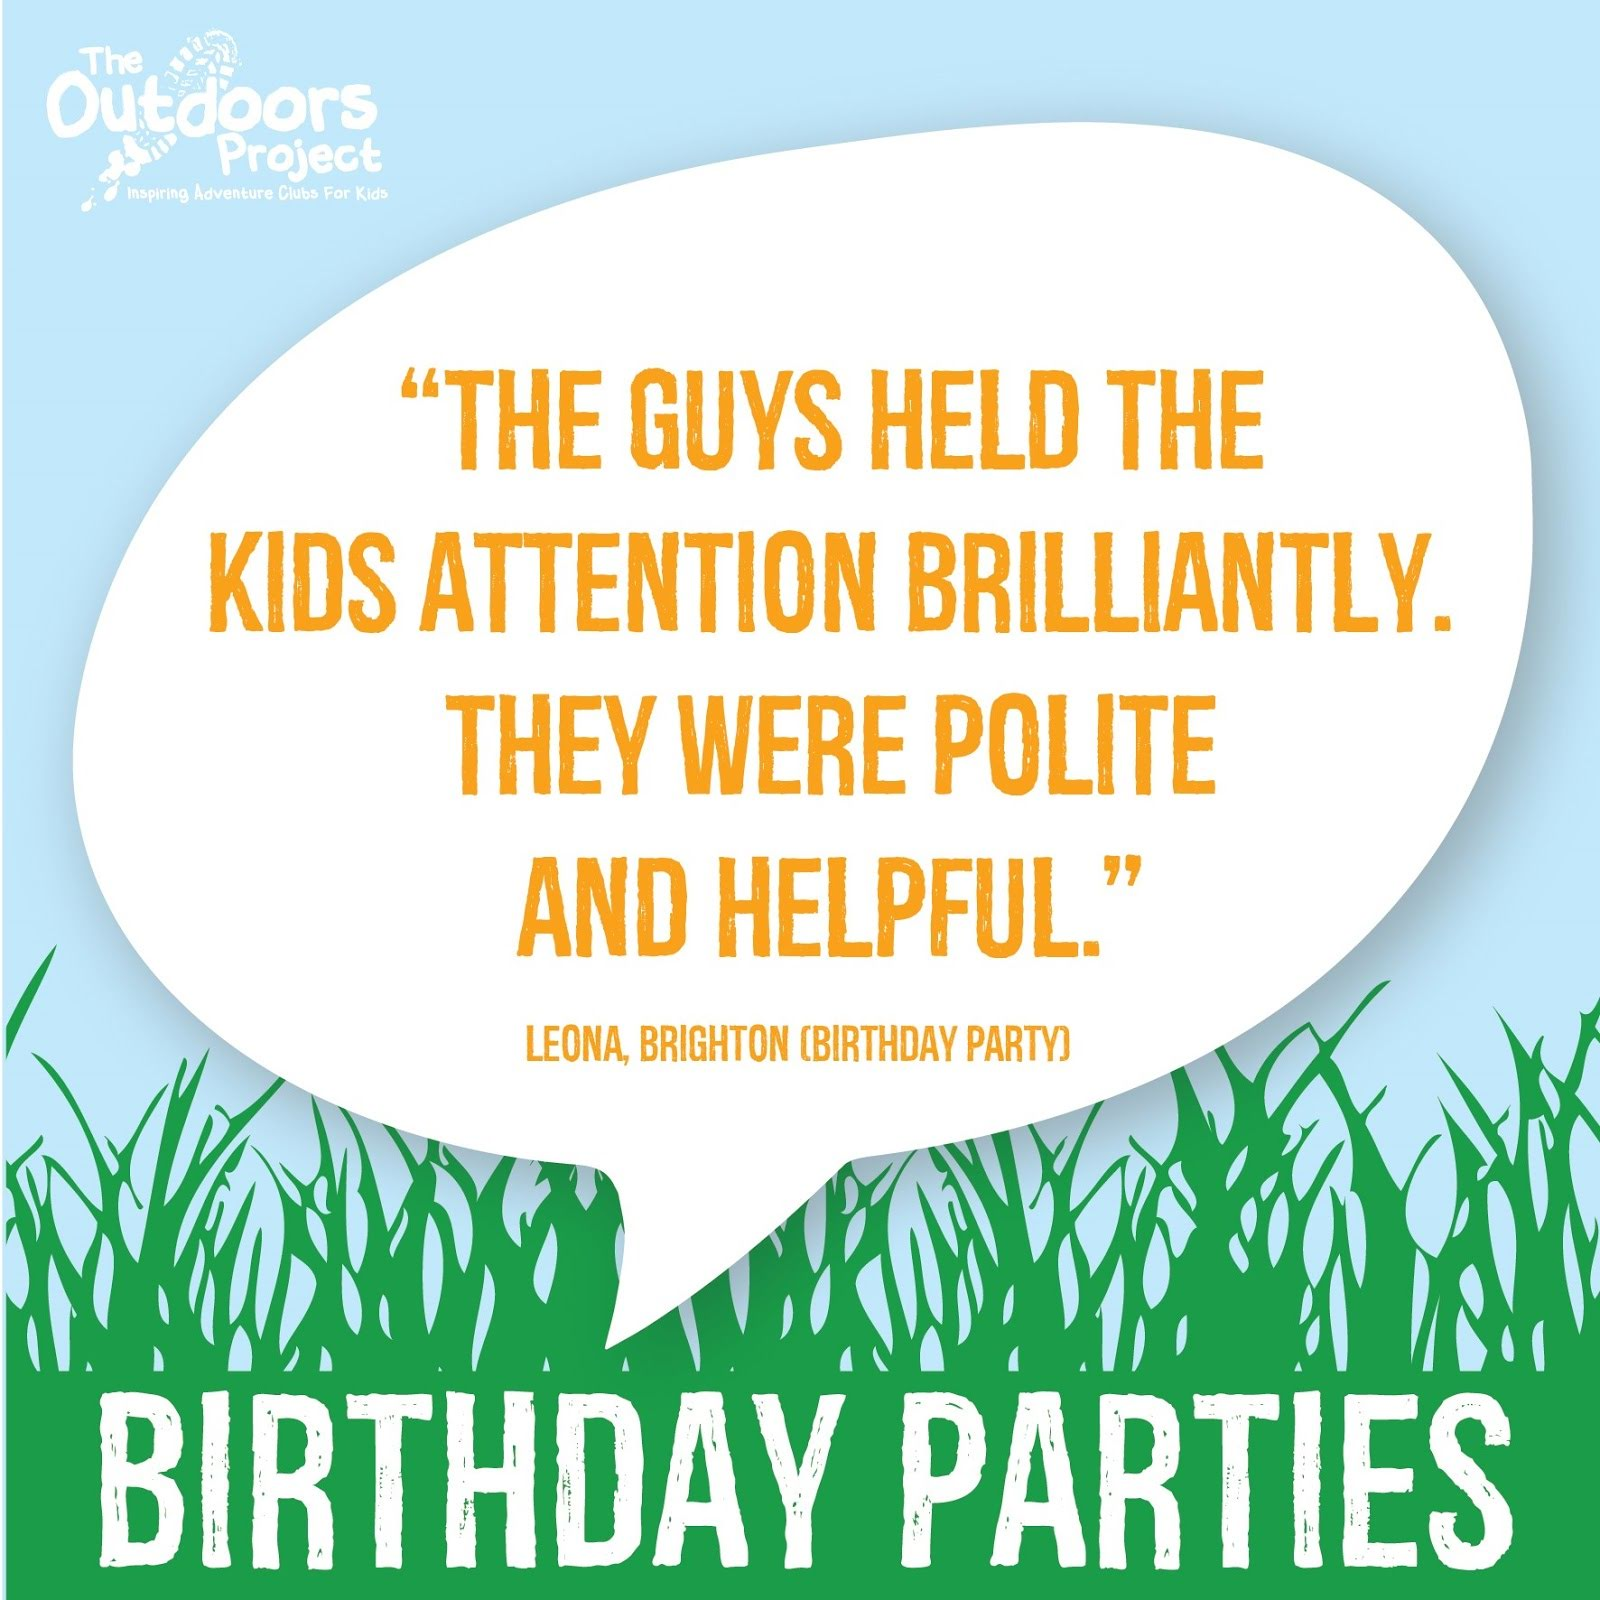 We are getting some amazing feedback about our parties!